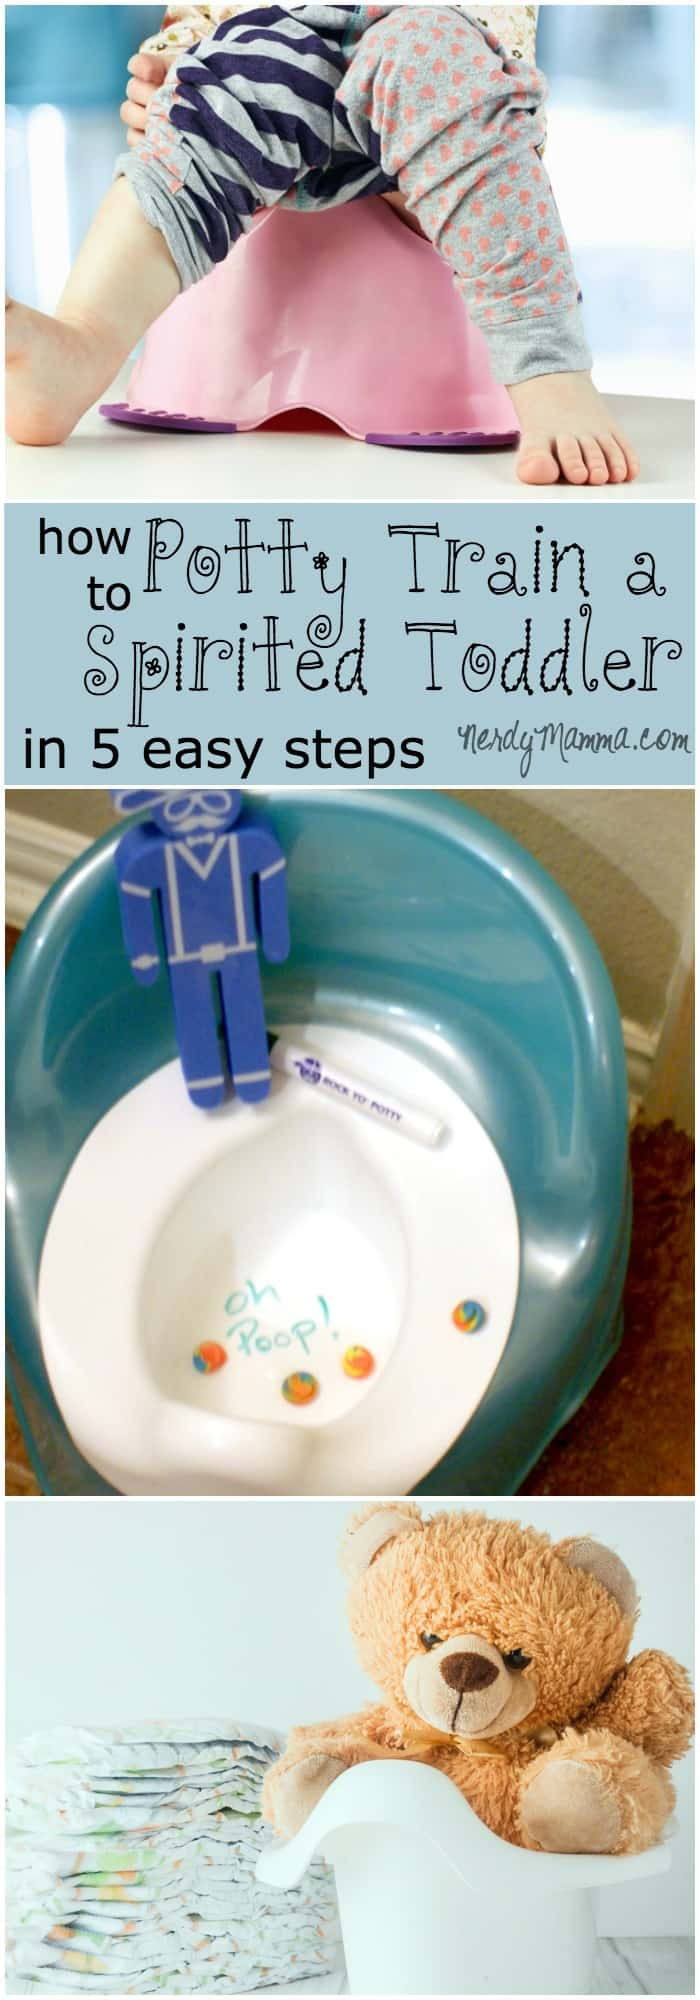 I'm potty training my spirited toddler using these five easy steps...it's made it a little less stressful to know I'm doing this the fun way--not the hard way.